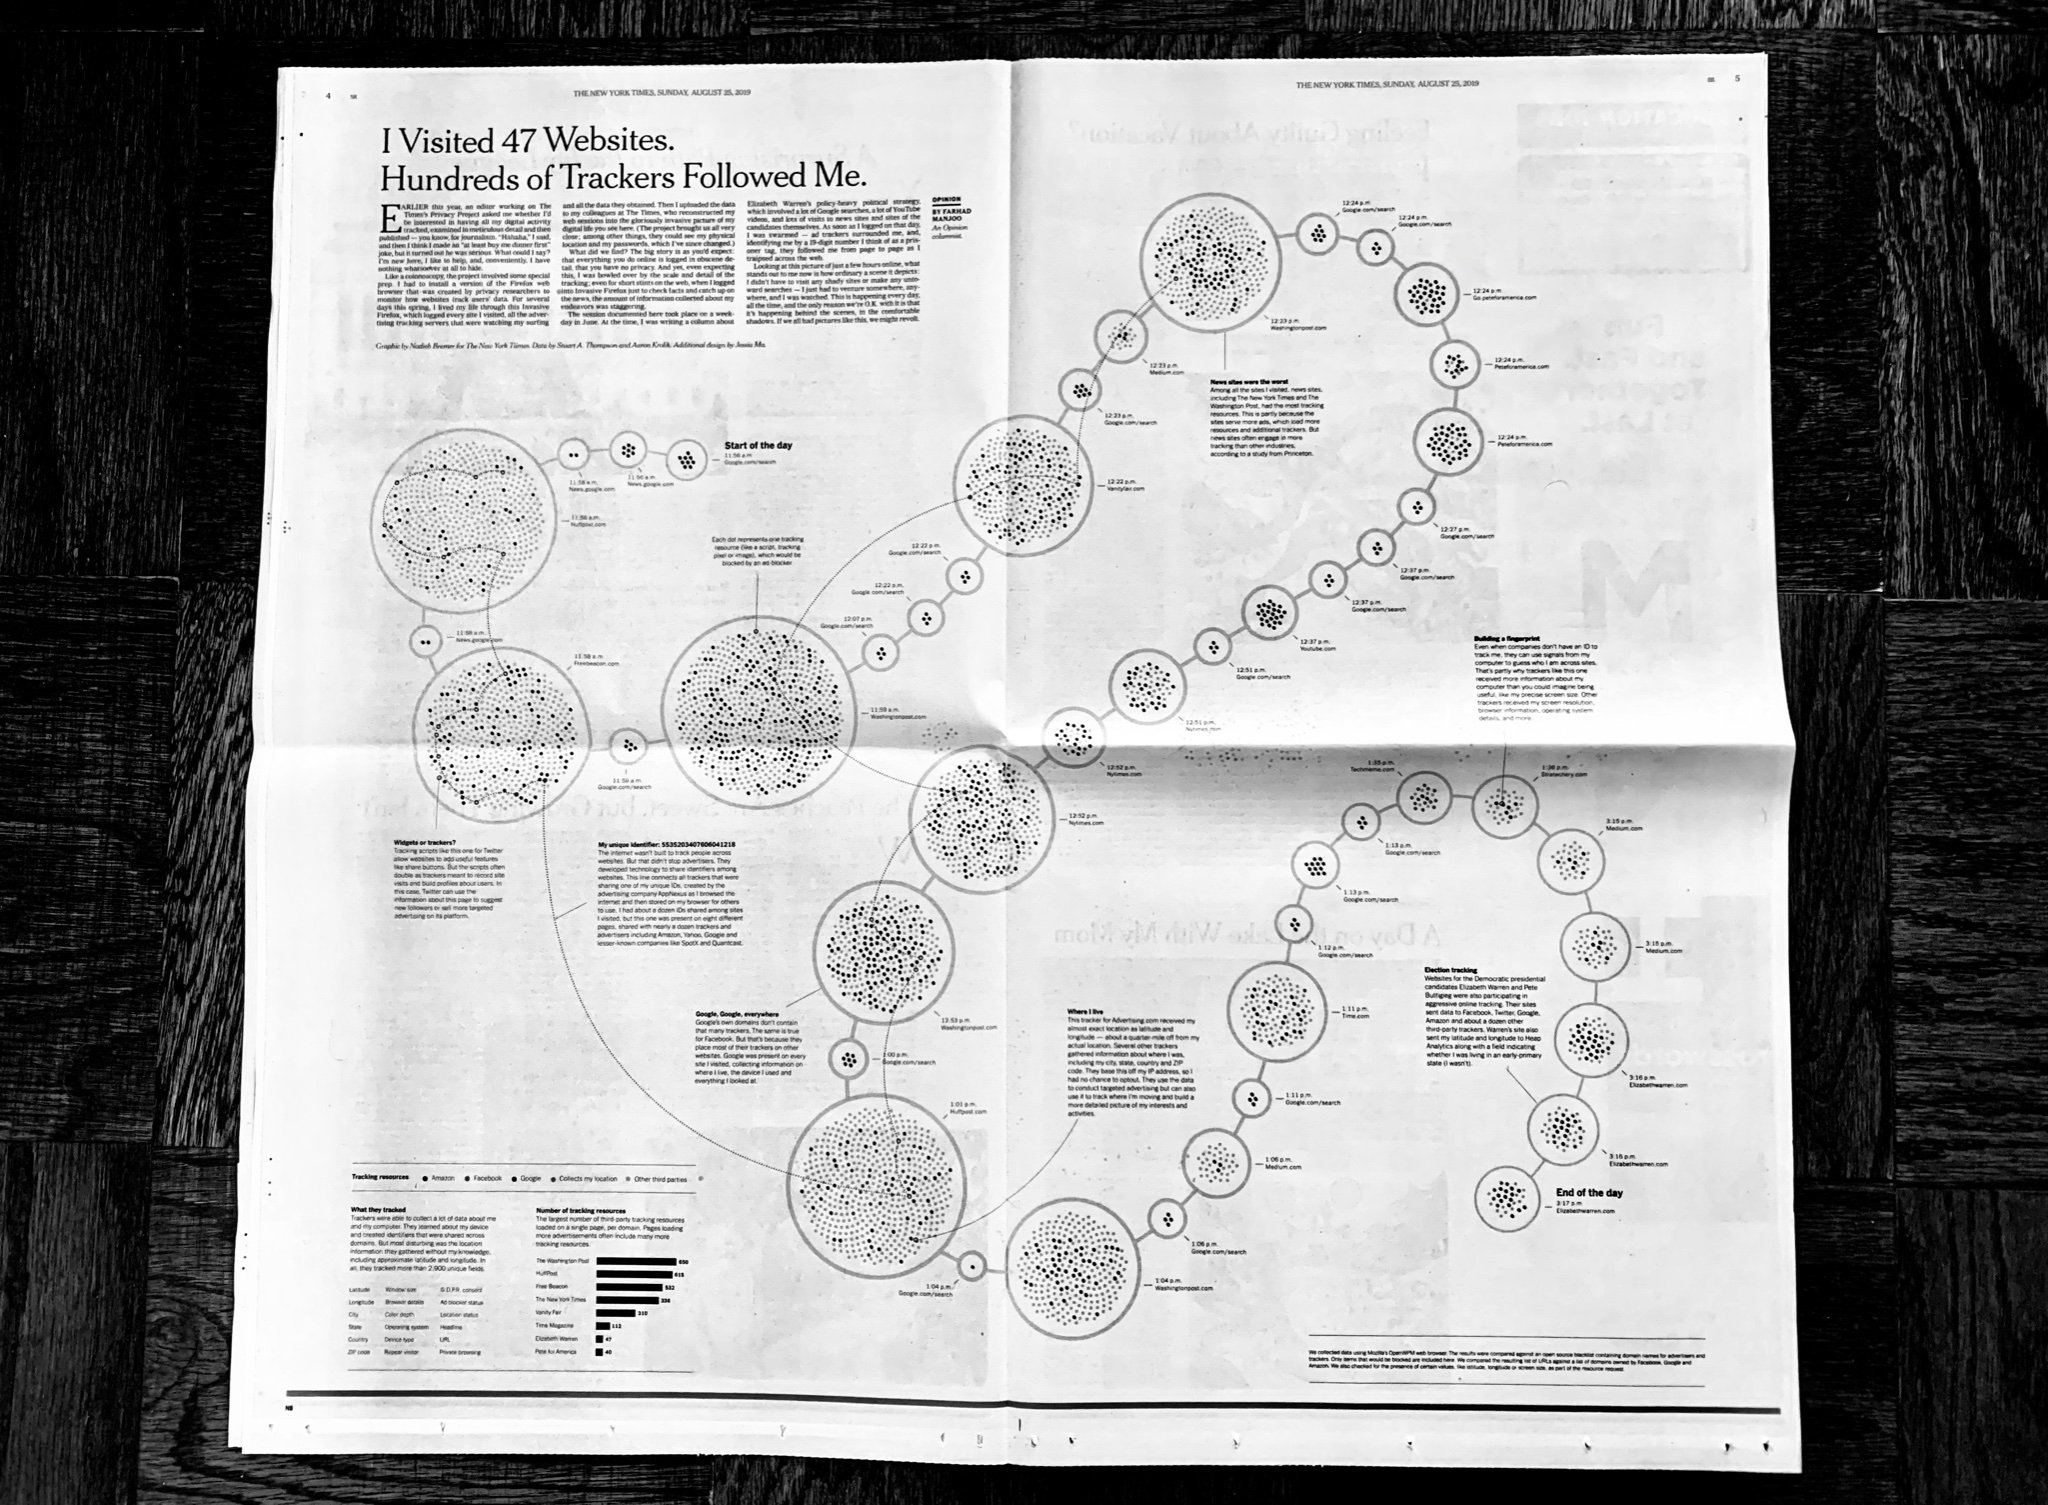 A black and white photo of the data visualization as it appeared in the full page spread of the New York Times Sunday edition of August 25th, 2019